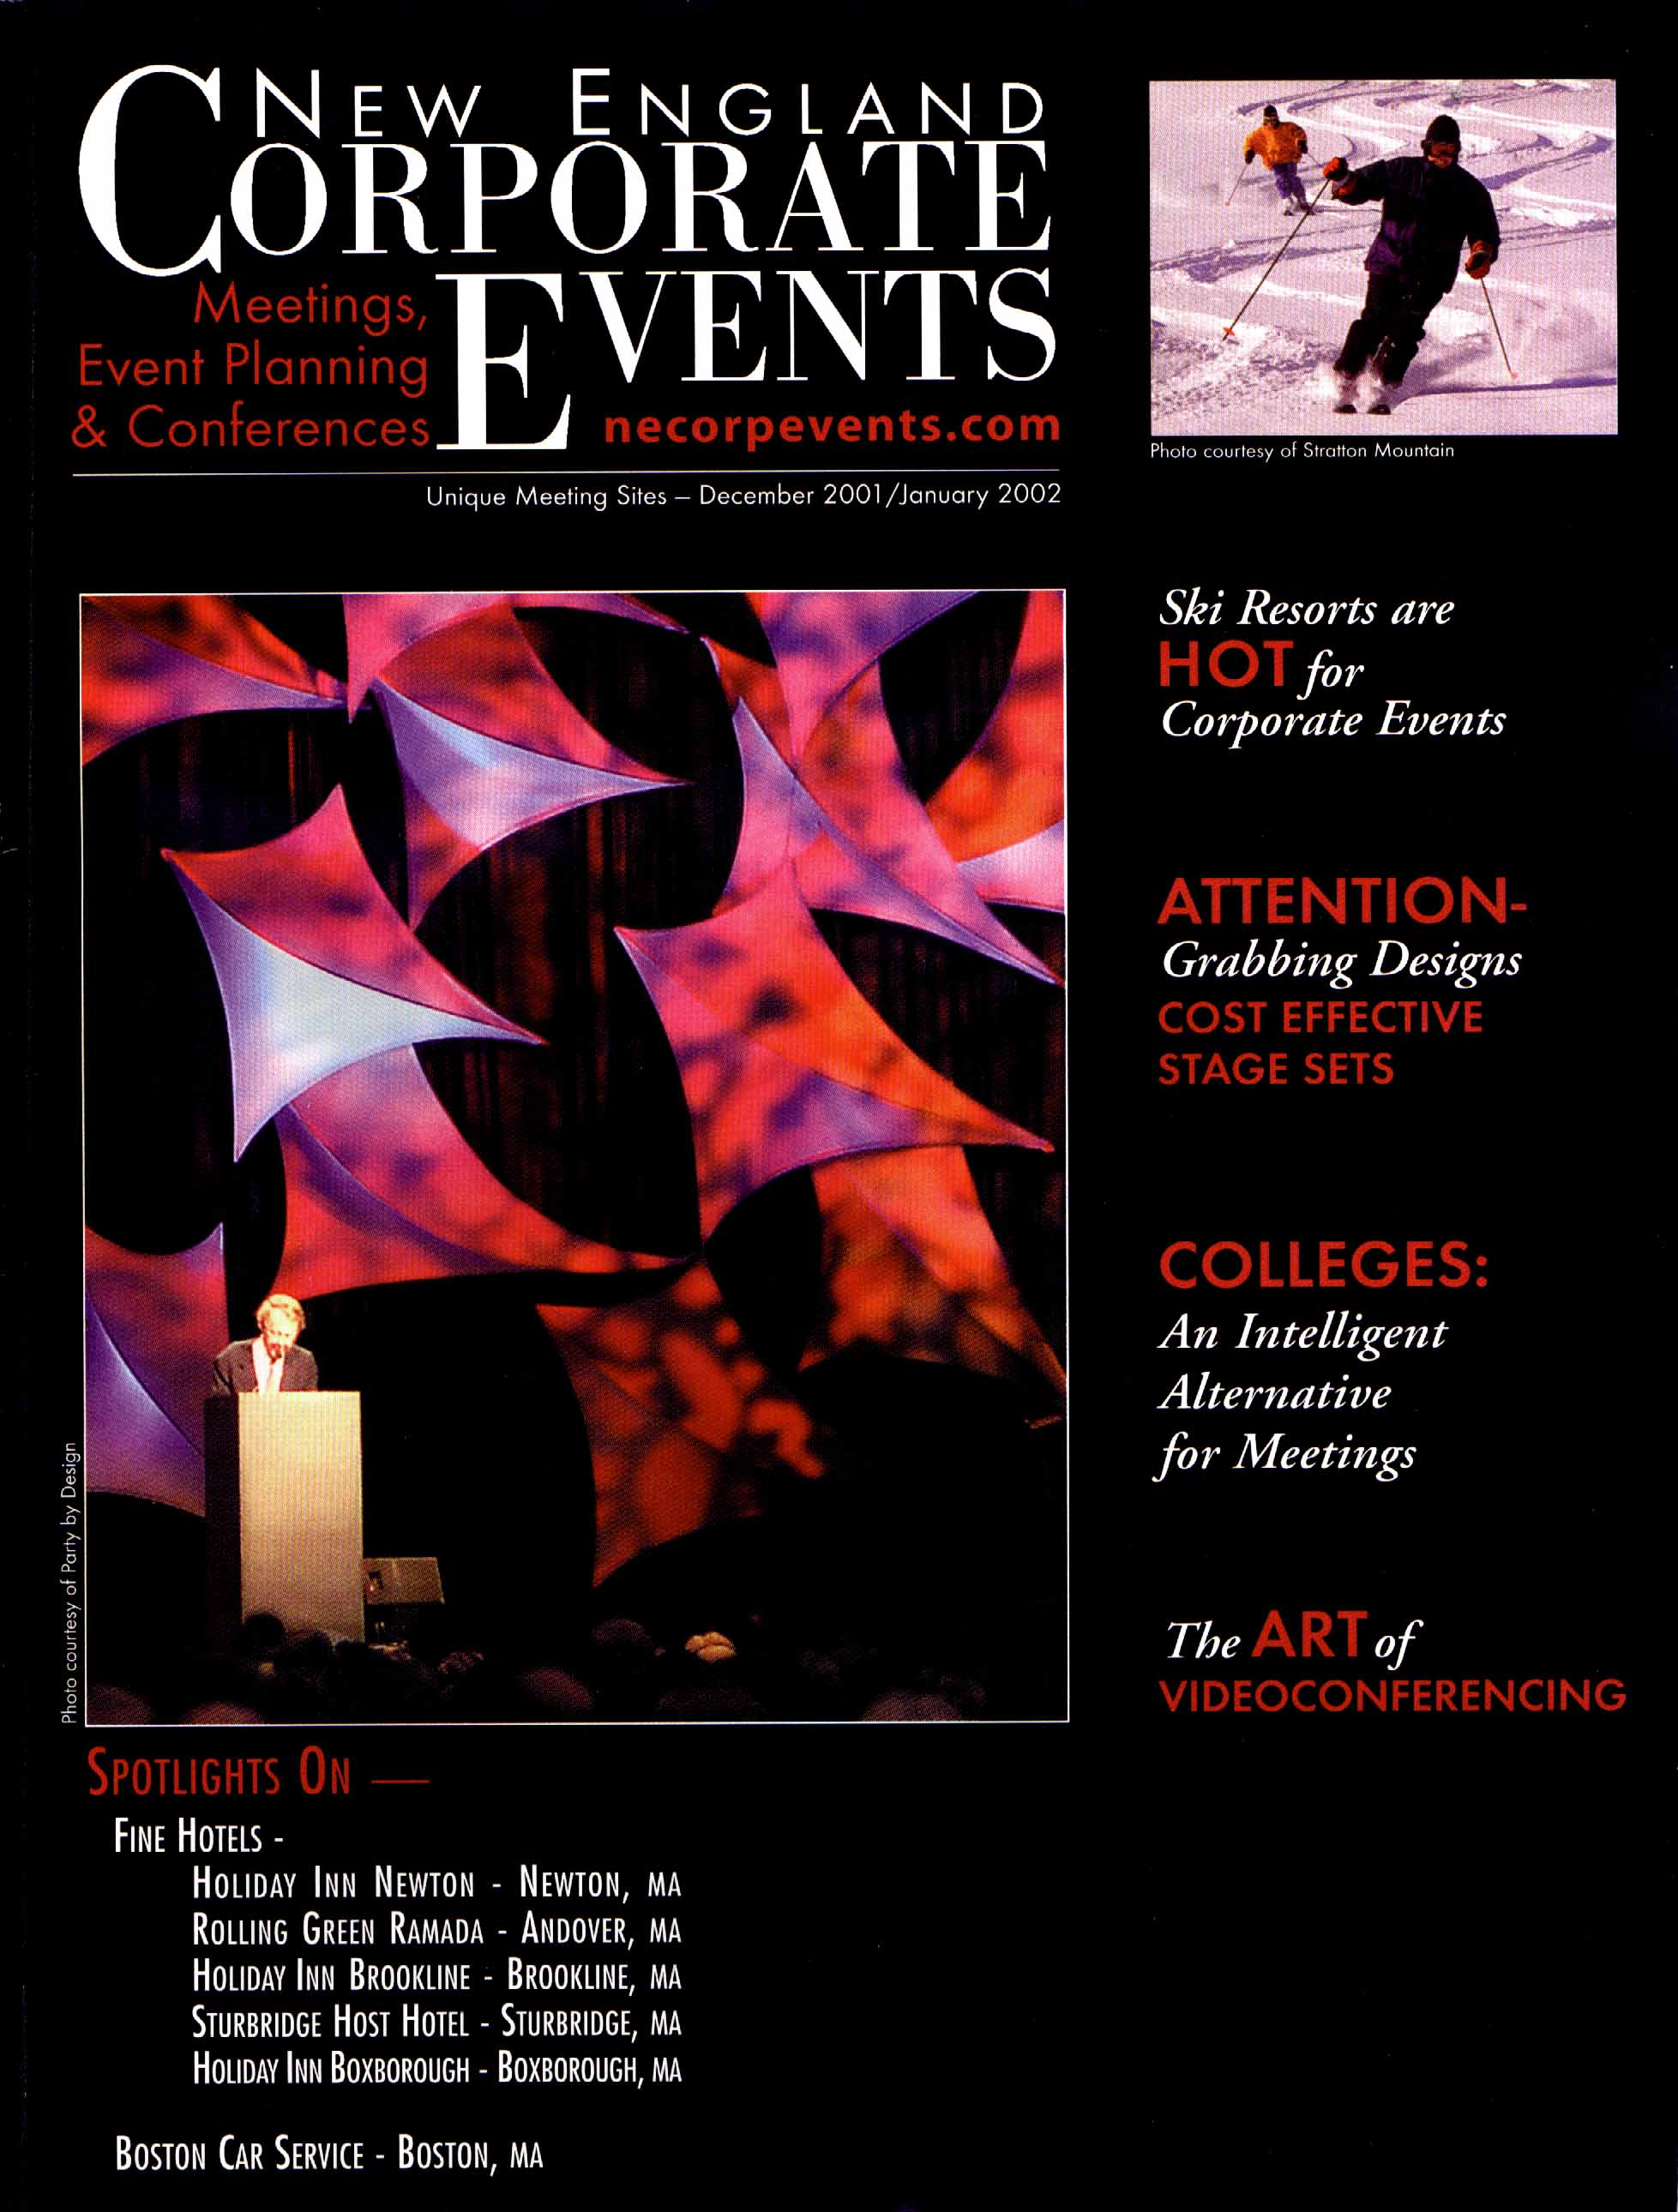 ne-corp-events-cover1.jpg